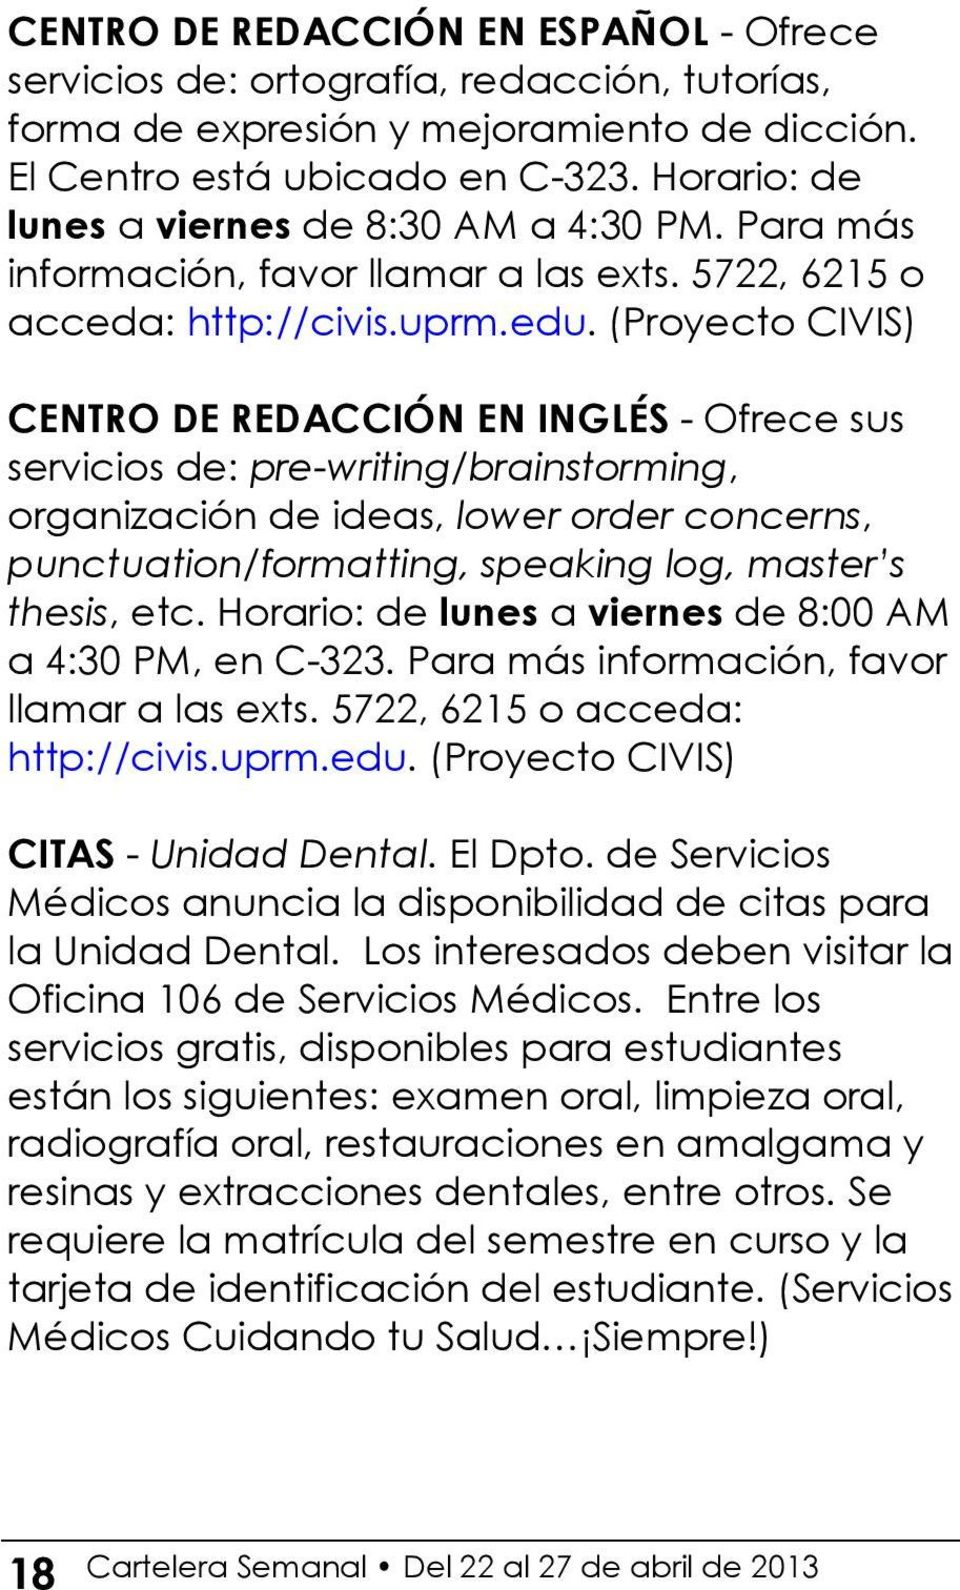 (Proyecto CIVIS) CENTRO DE REDACCIÓN EN INGLÉS - Ofrece sus servicios de: pre-writing/brainstorming, organización de ideas, lower order concerns, punctuation/formatting, speaking log, master s